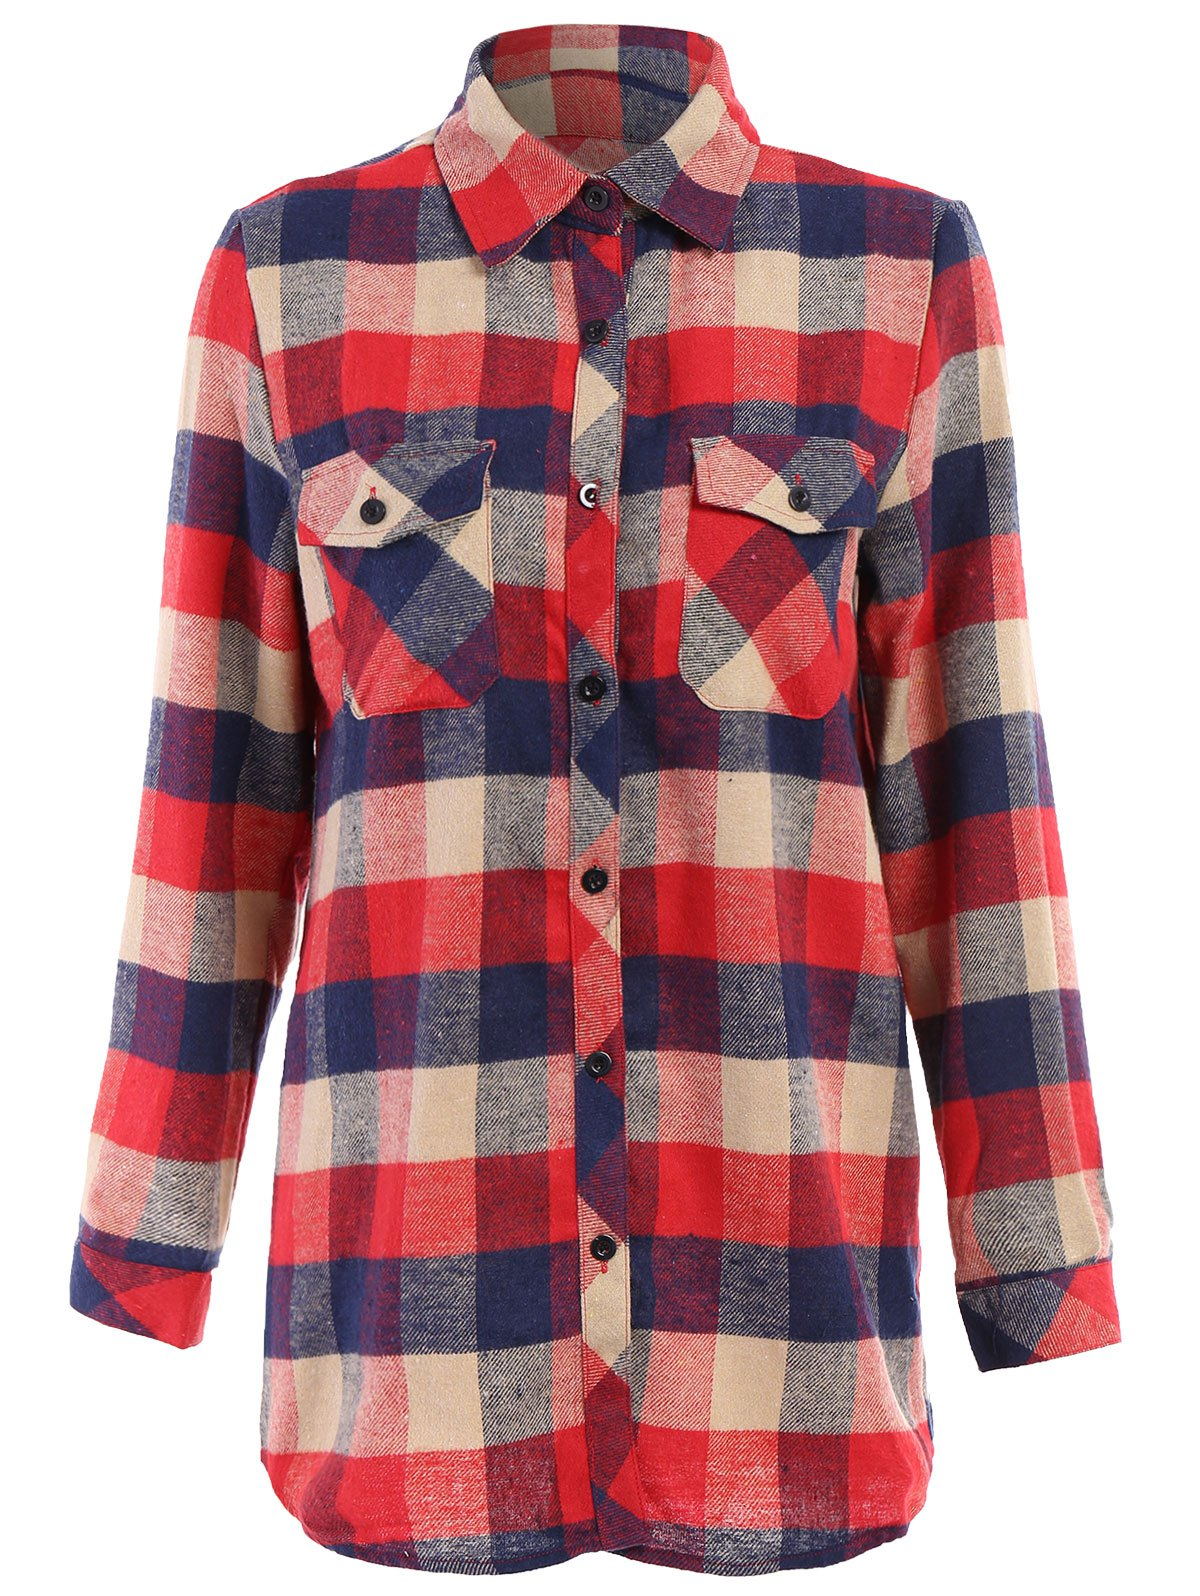 Preppy Style Women's Spring Long Shirt With Colorful Checked Print Slimming Design